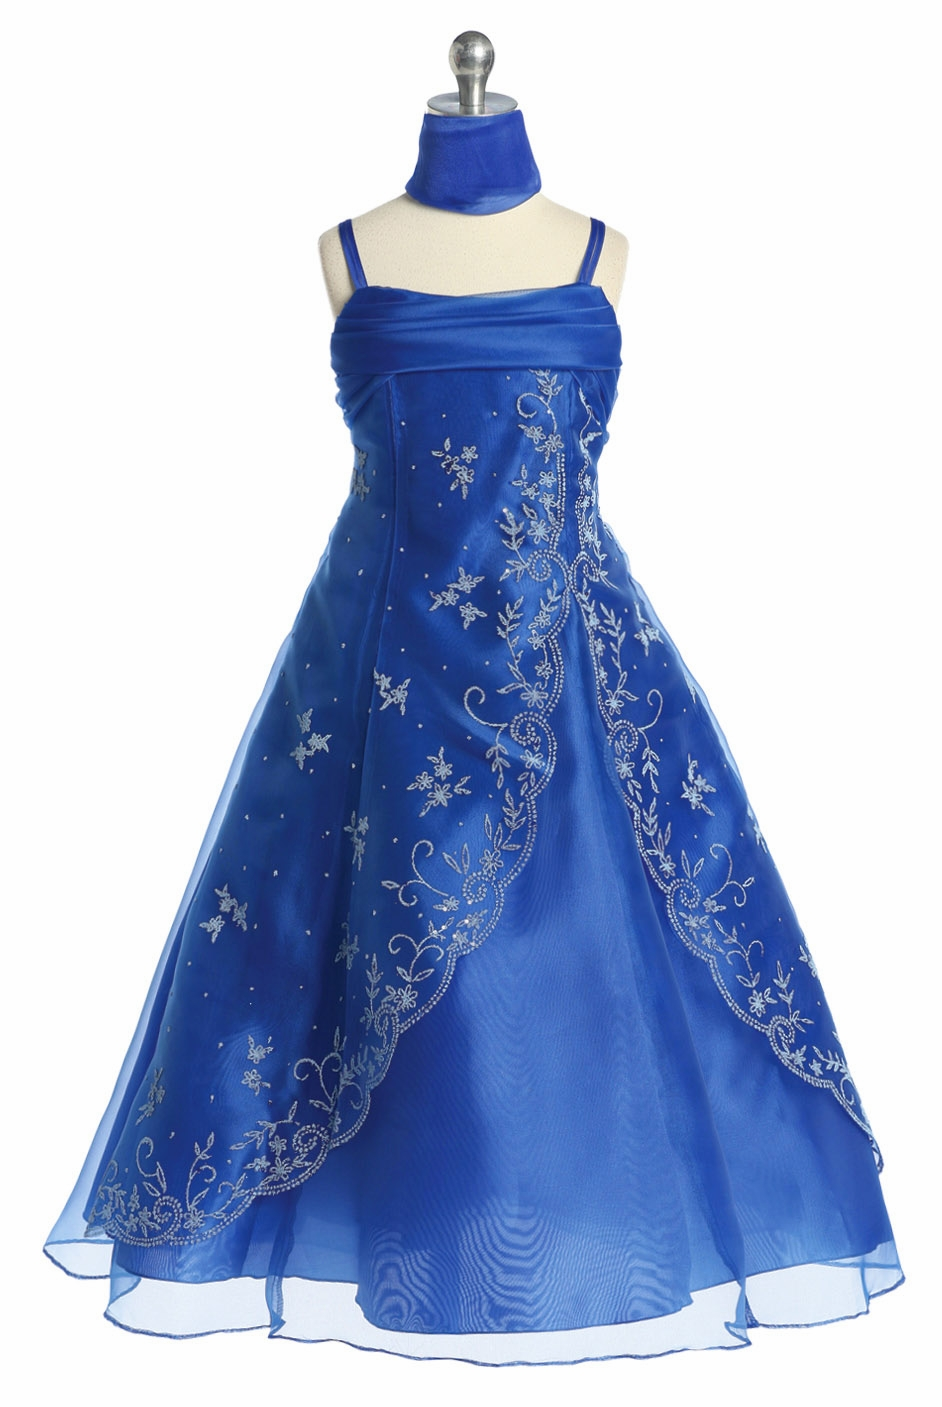 Junior bridesmaid dresses pinkprincess royal blue beaded a line special occasion dress ombrellifo Images